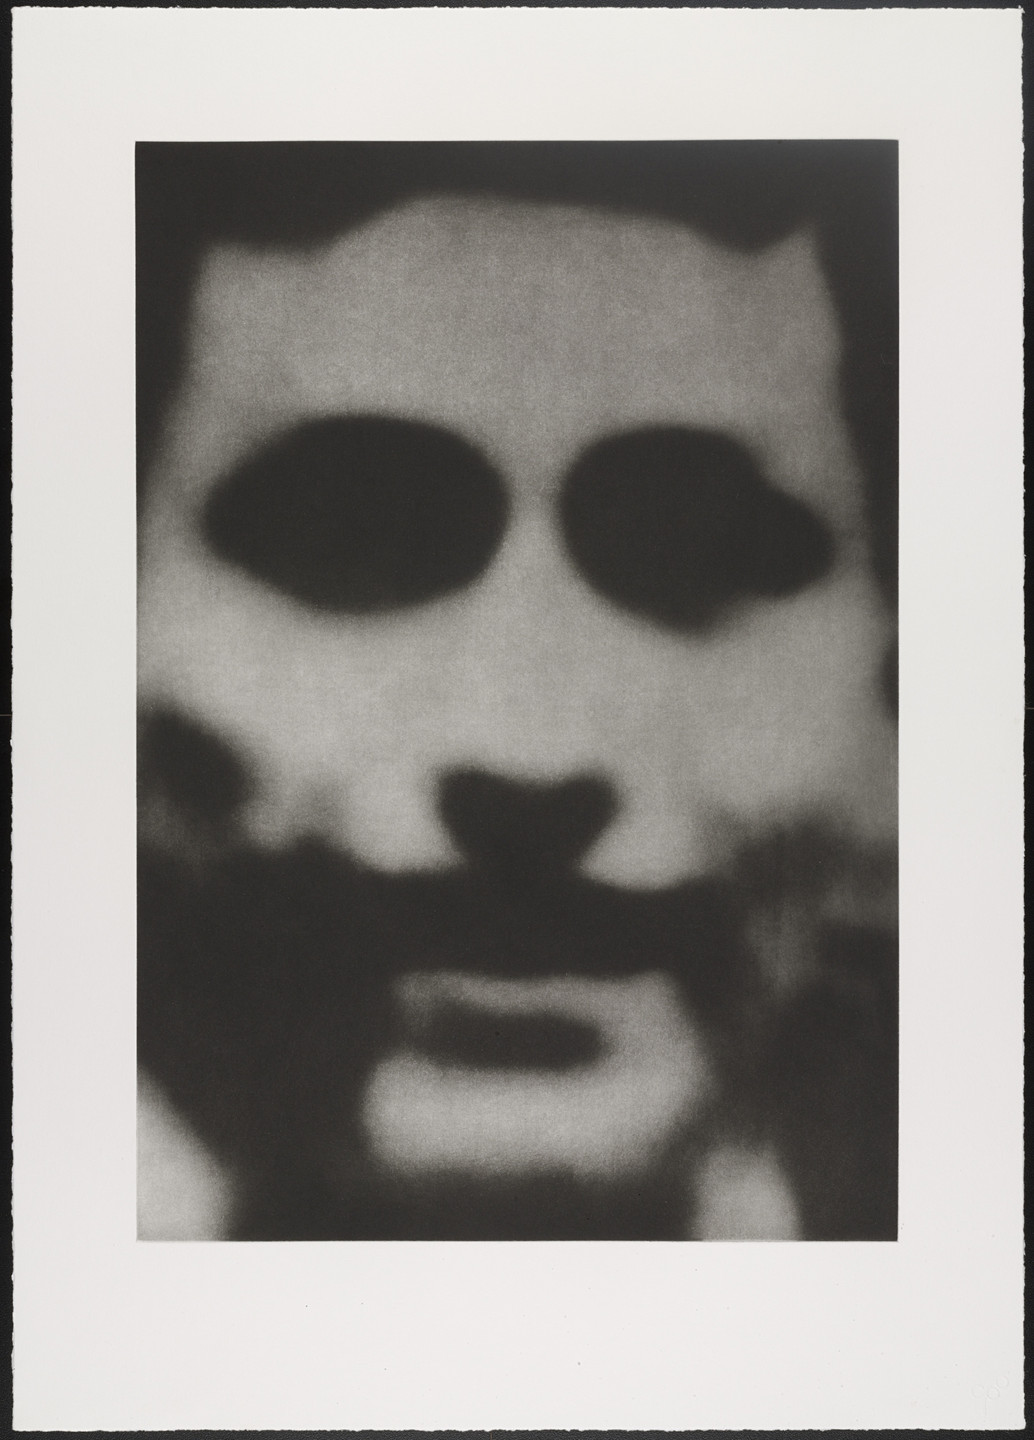 Christian Boltanski. Untitled from Gymnasium Chases. 1991 (project begun 1989).